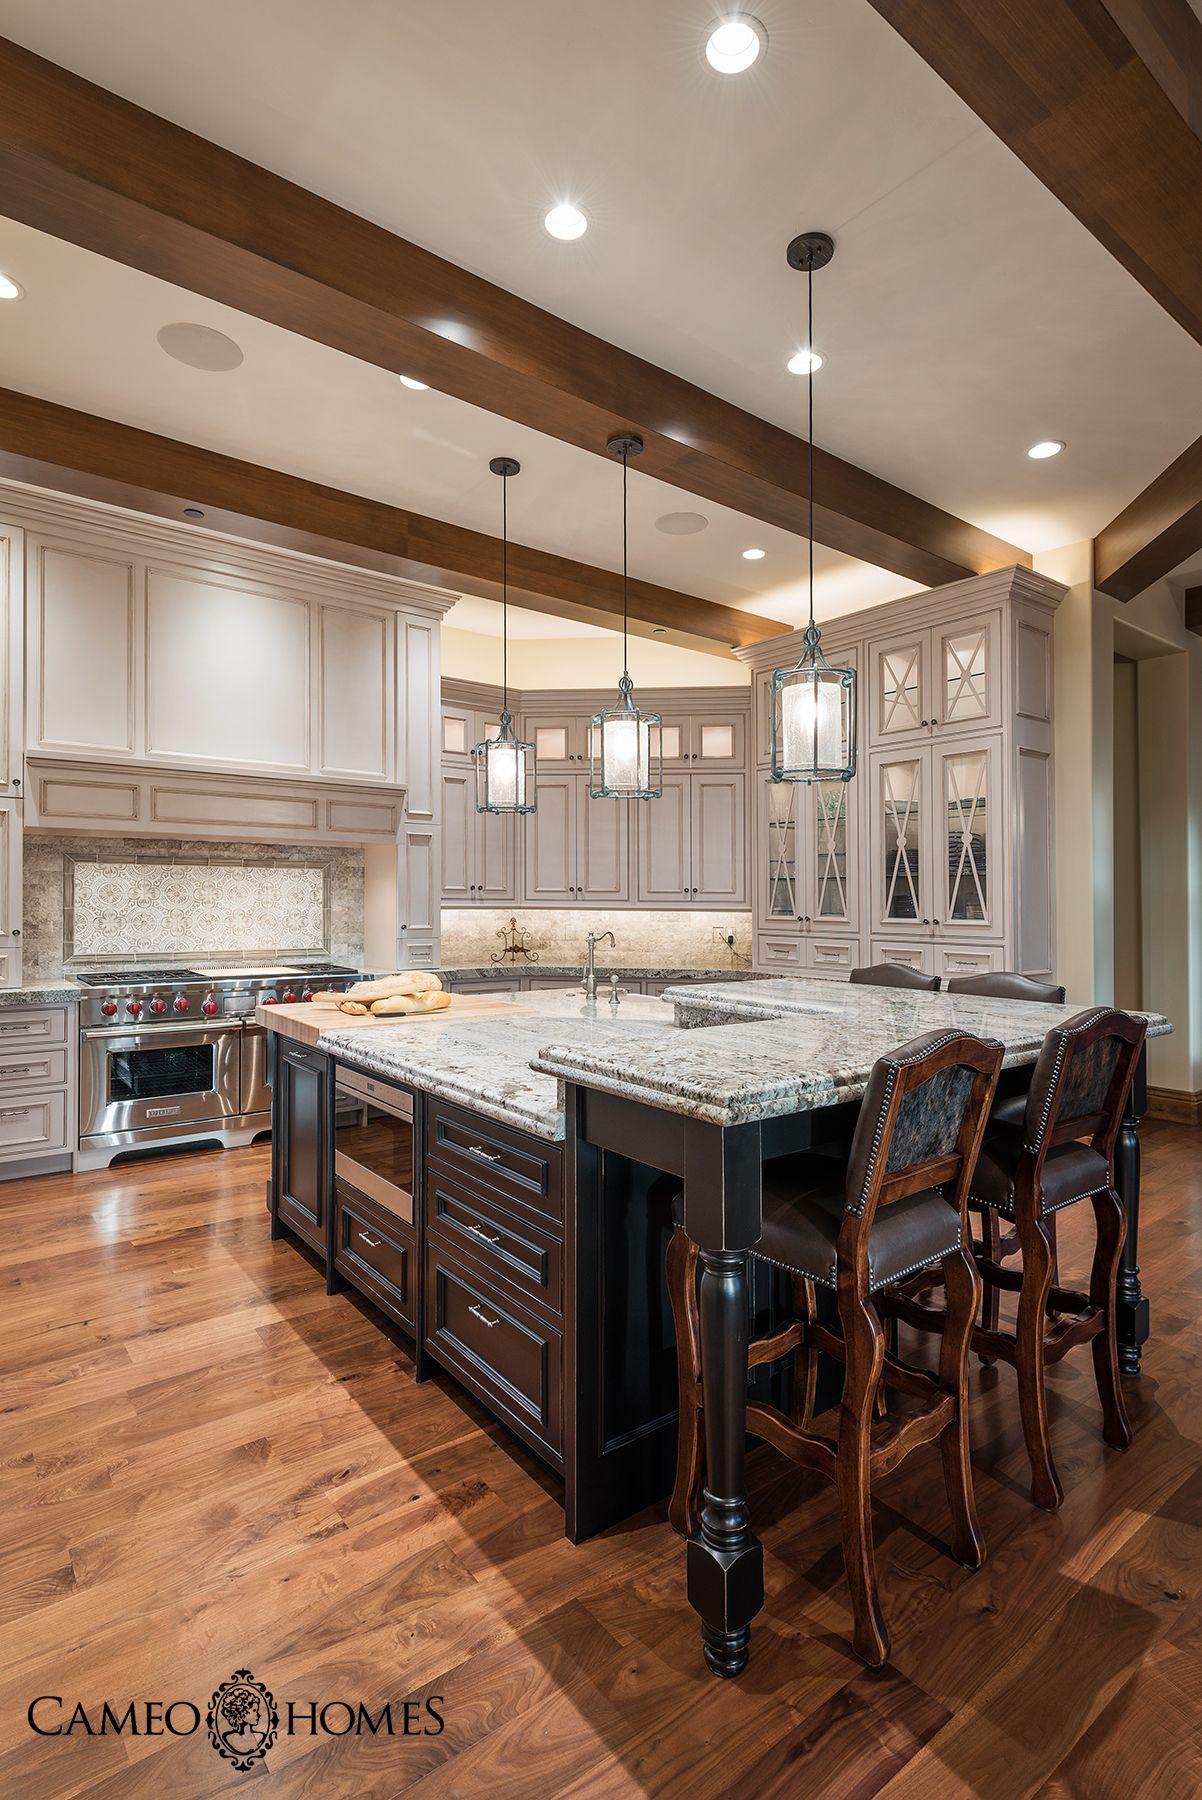 Kitchen Island Cabinets By Highline MHR Interior Design Utah Home Builder Park CityHome